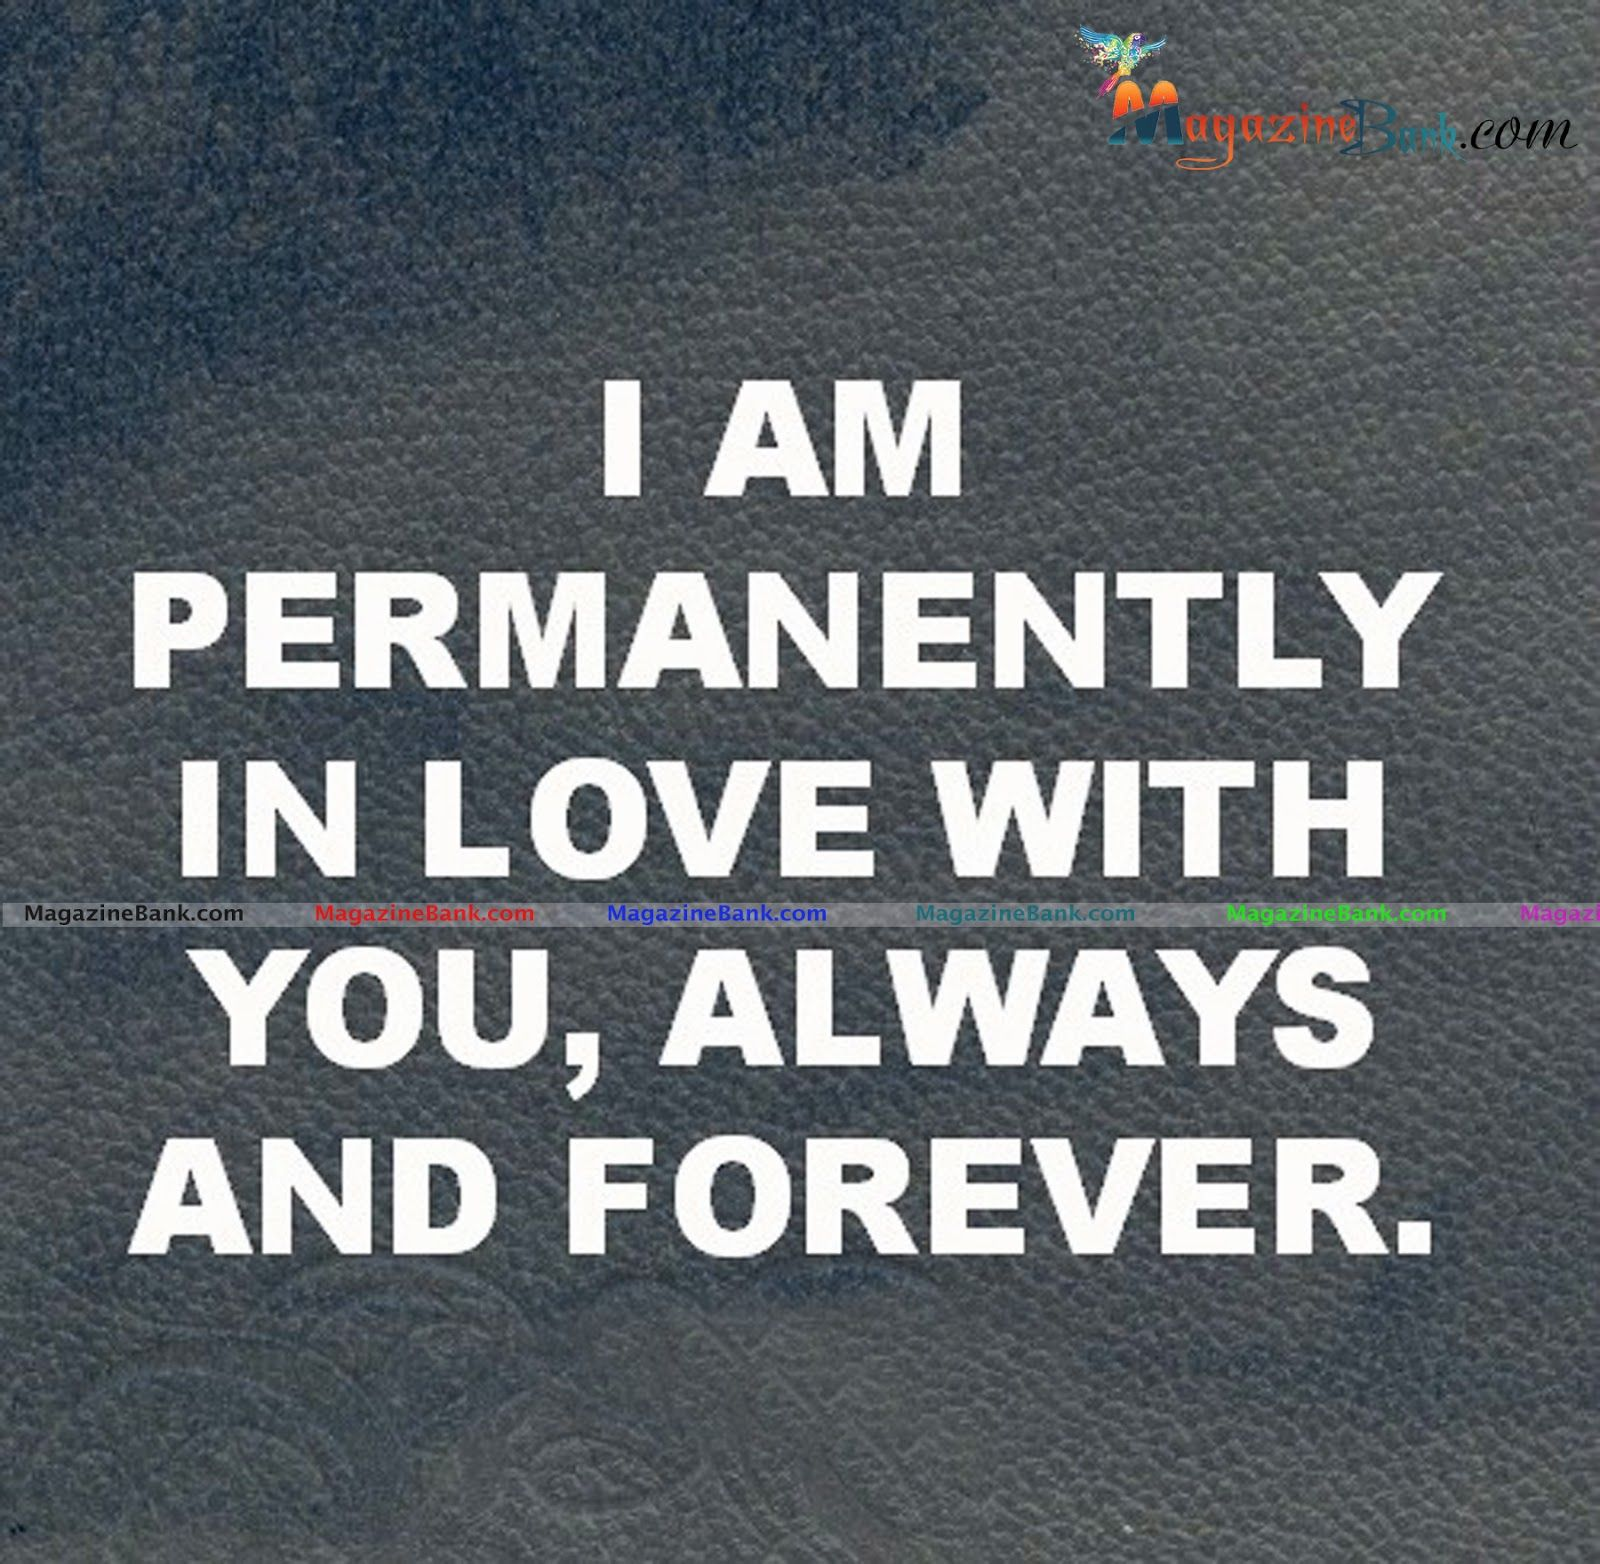 I Will Always Love You Quotes For Her Quotesgram By At Quotesgram